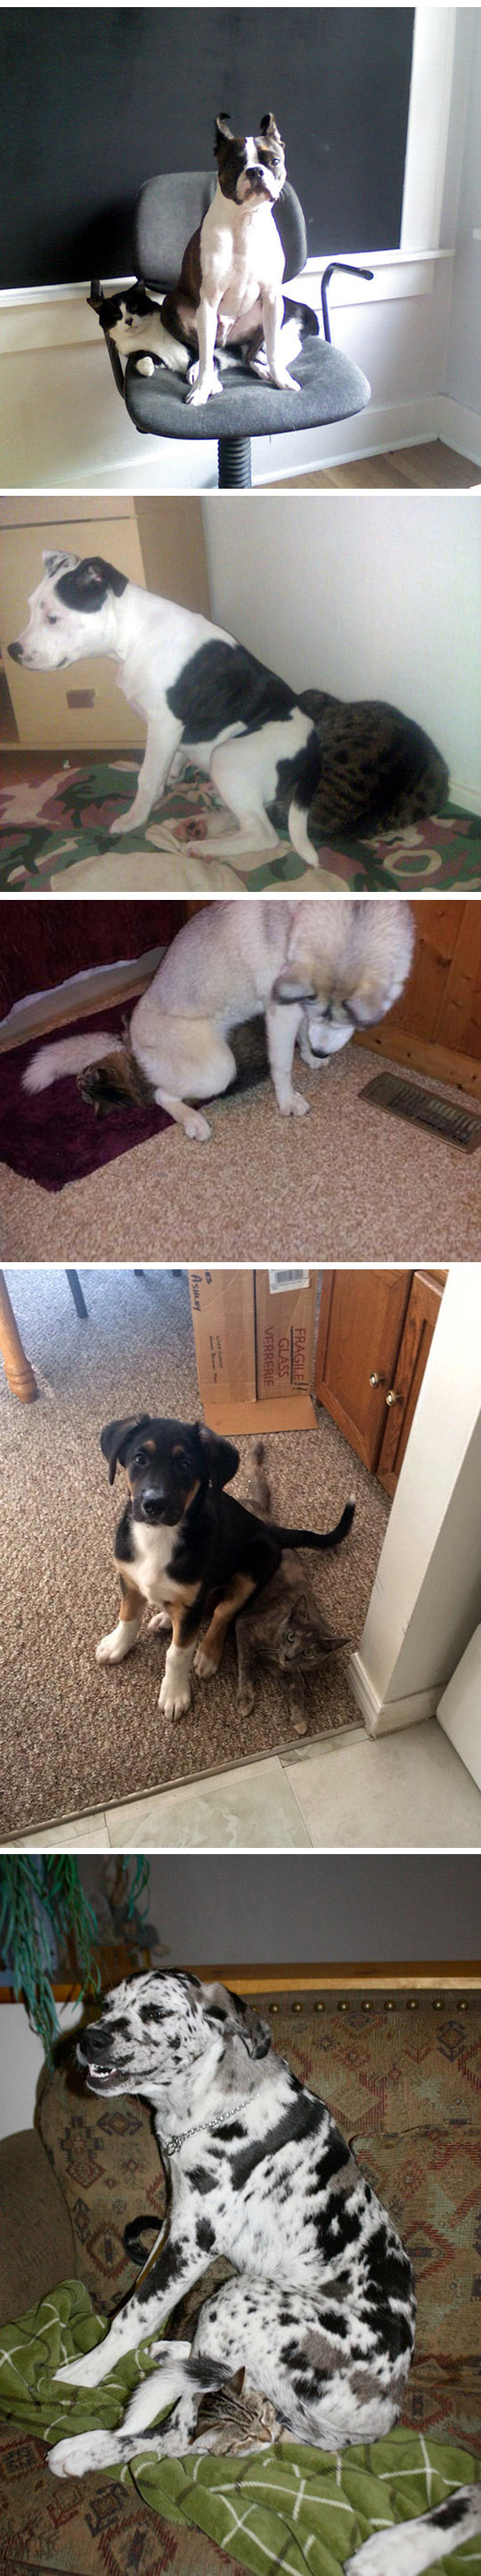 funny-dogs-sitting-cats-couch-park-annoying